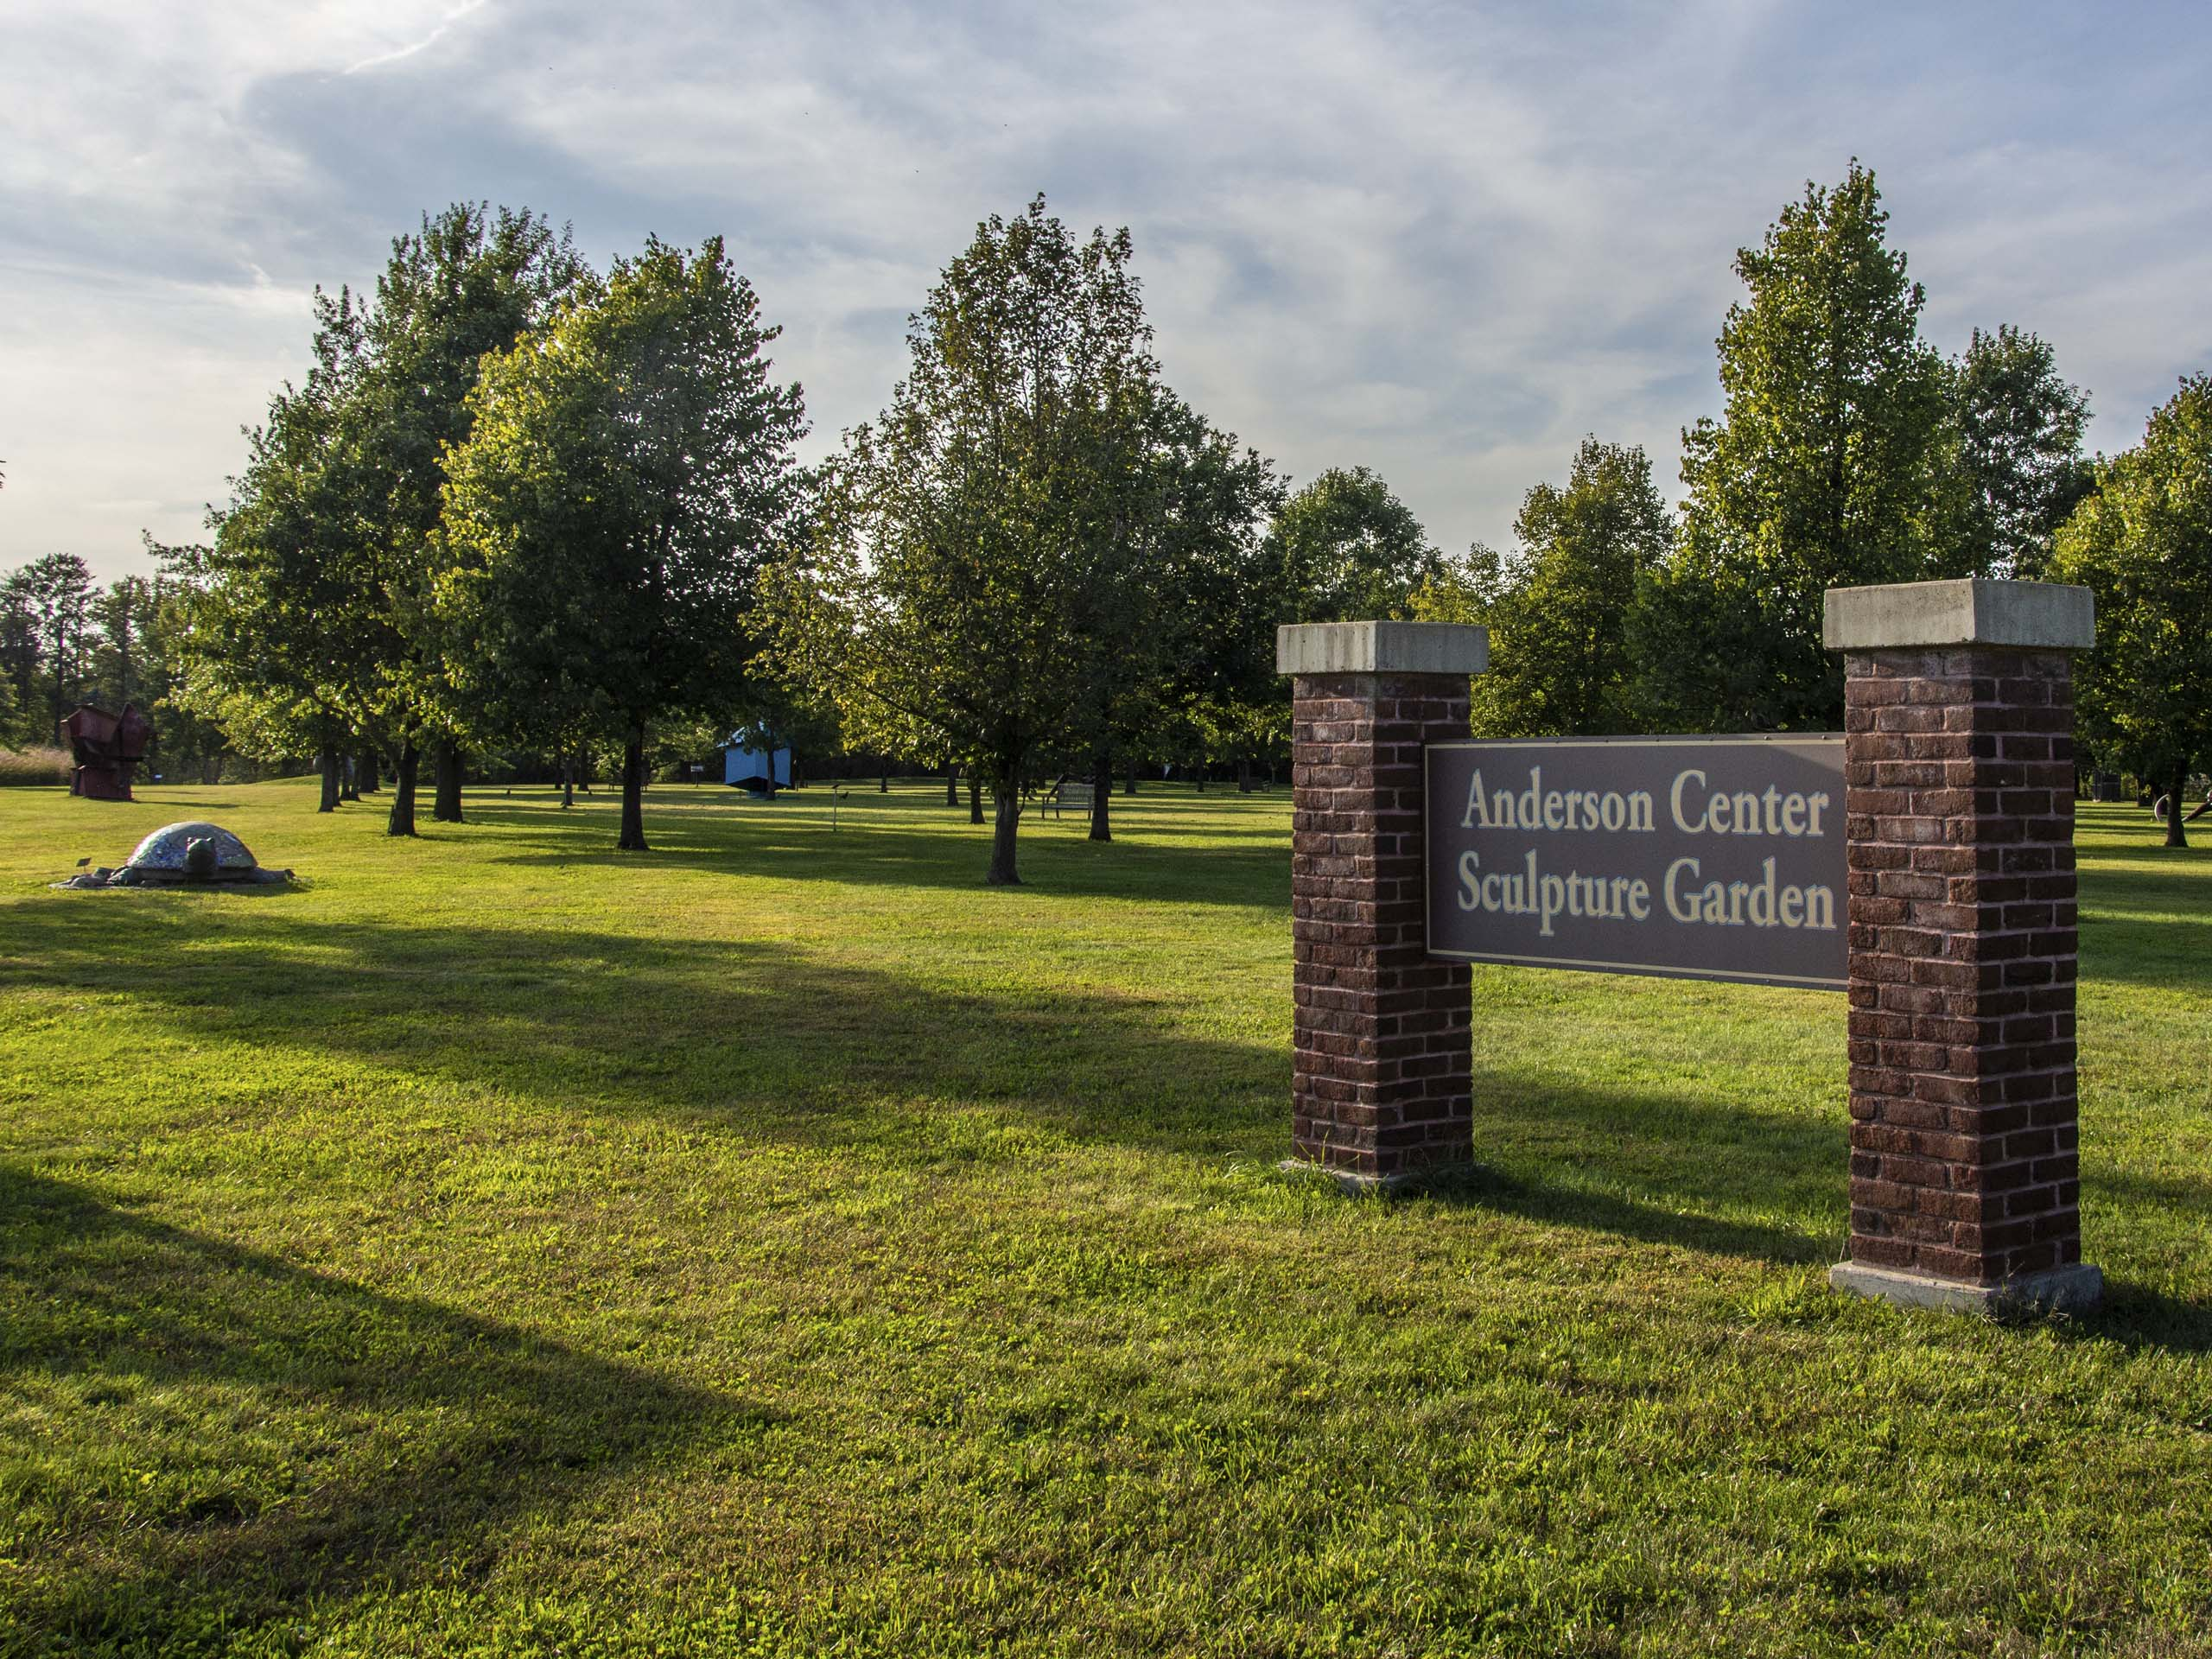 Entrance to the Anderson Center Sculpture Garden